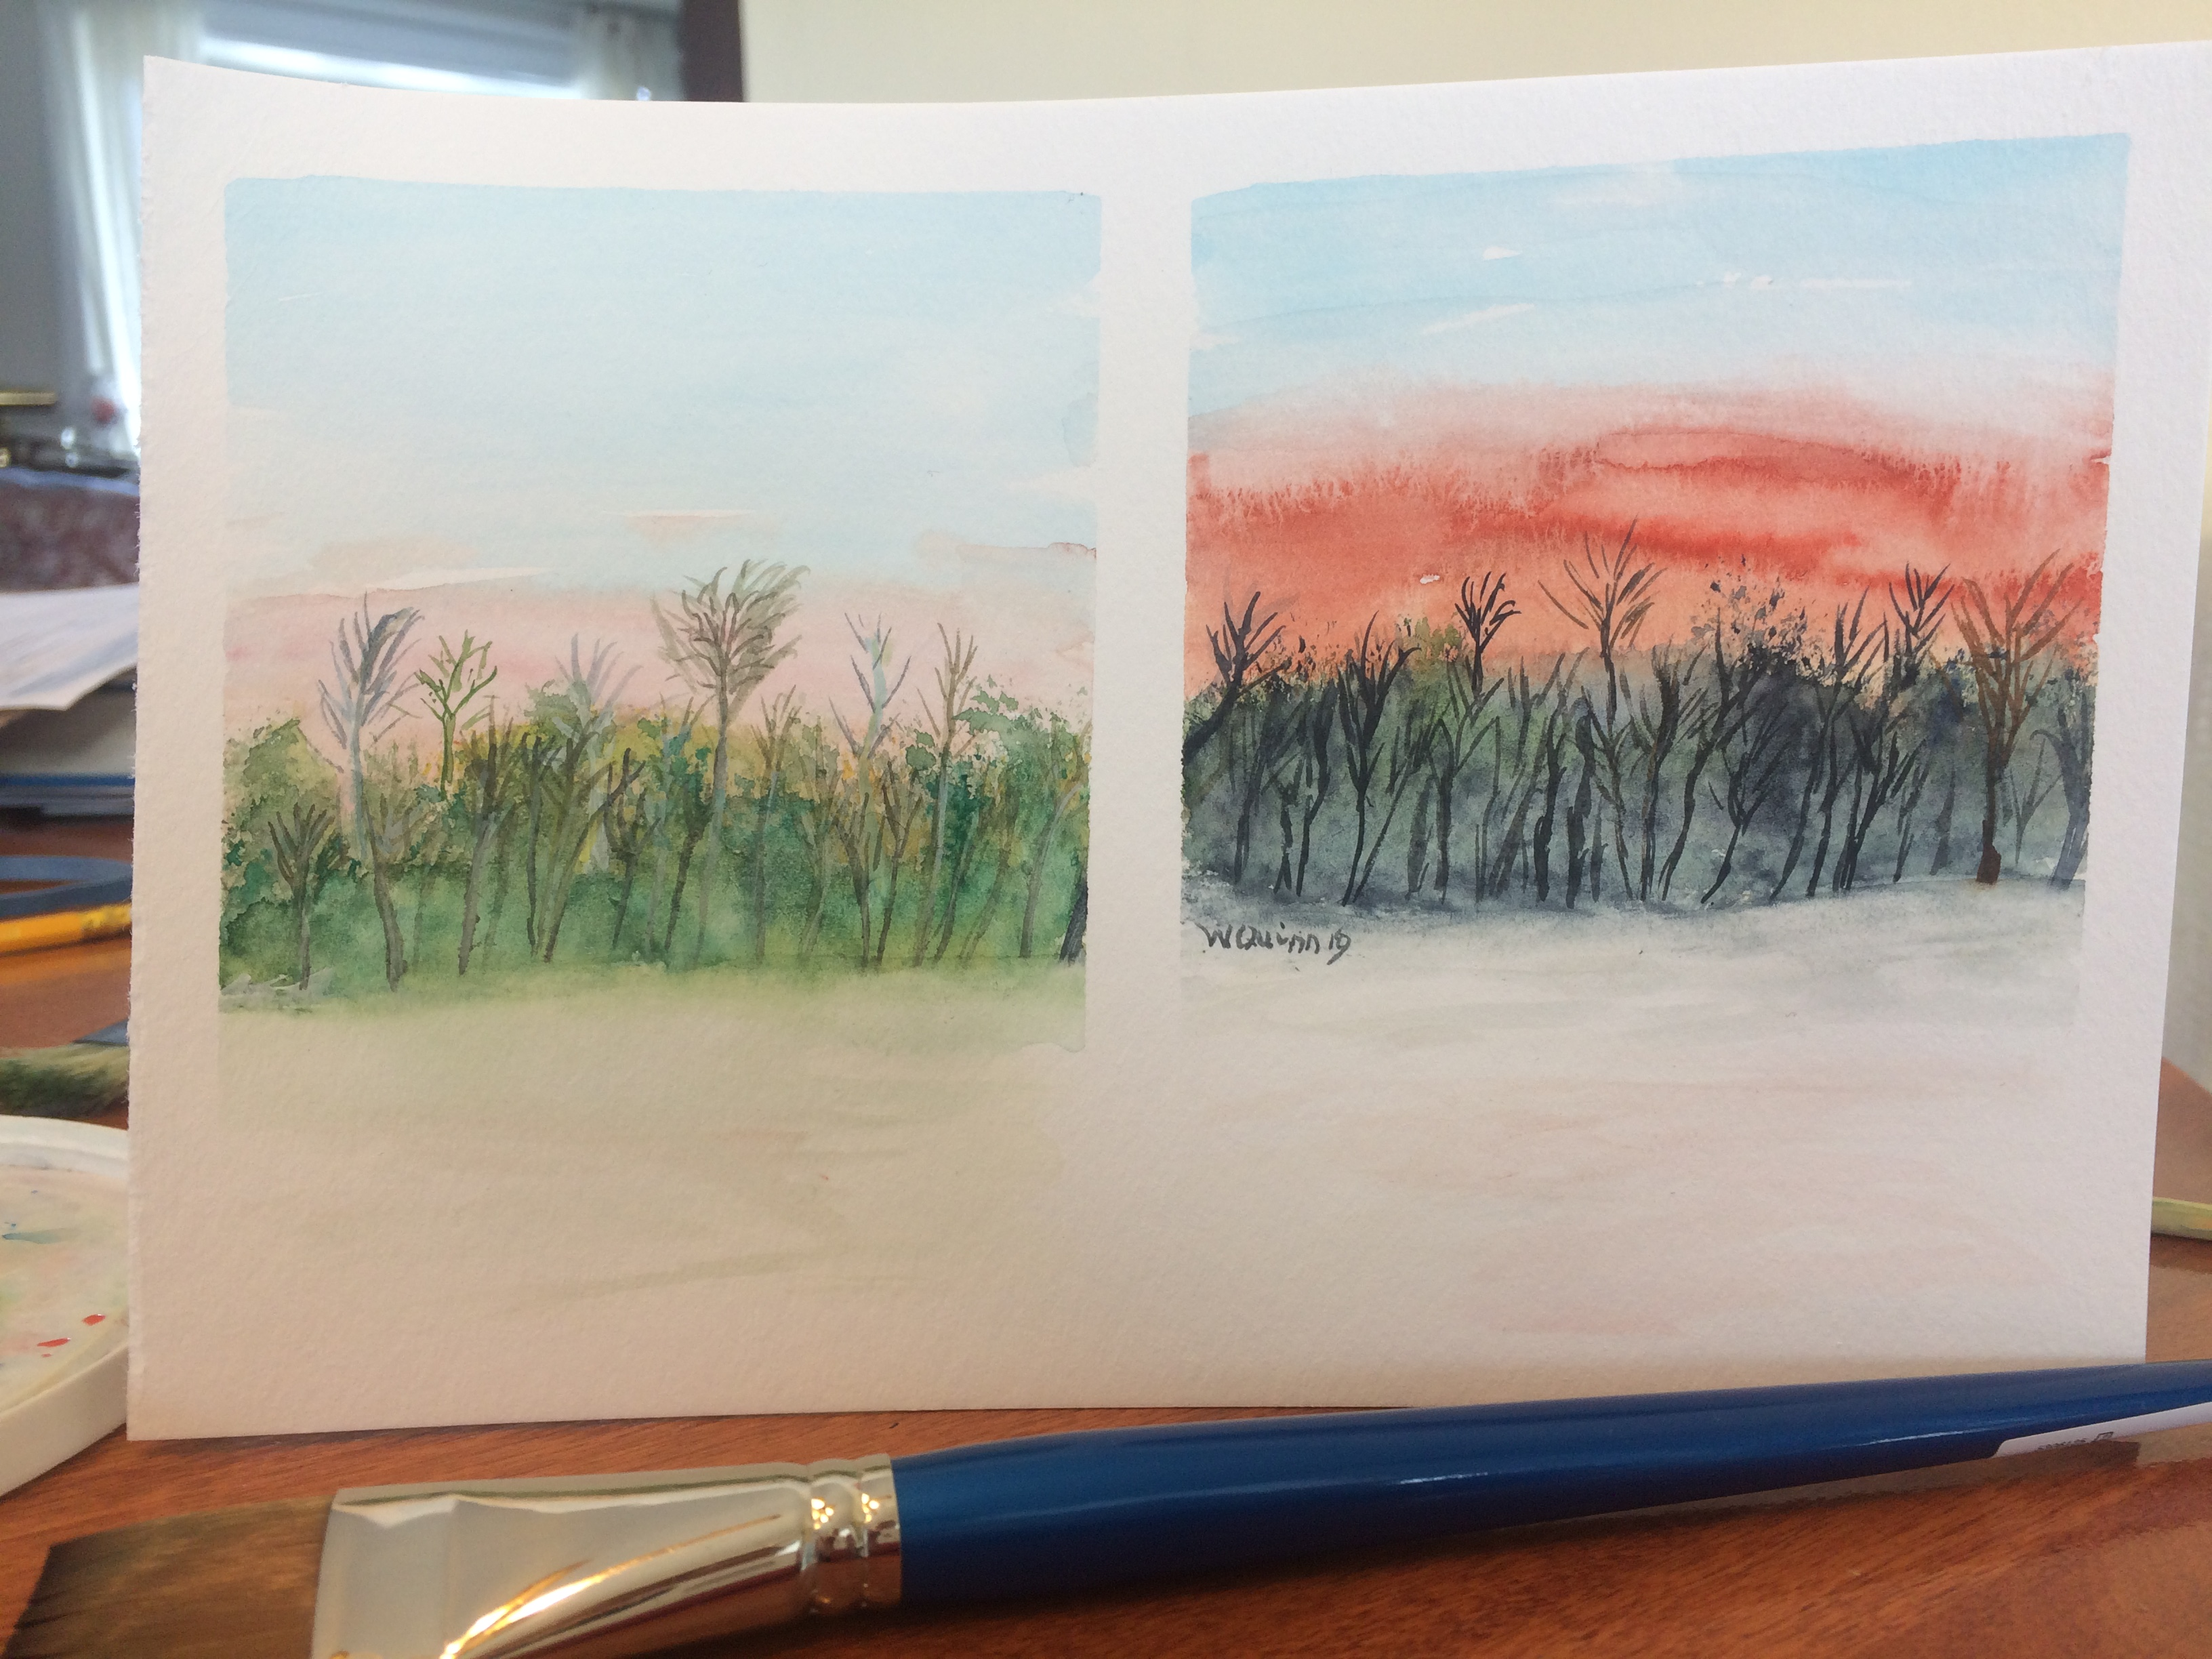 watercolour paintings, one of sunrise with trees and one of sunset with the trees.